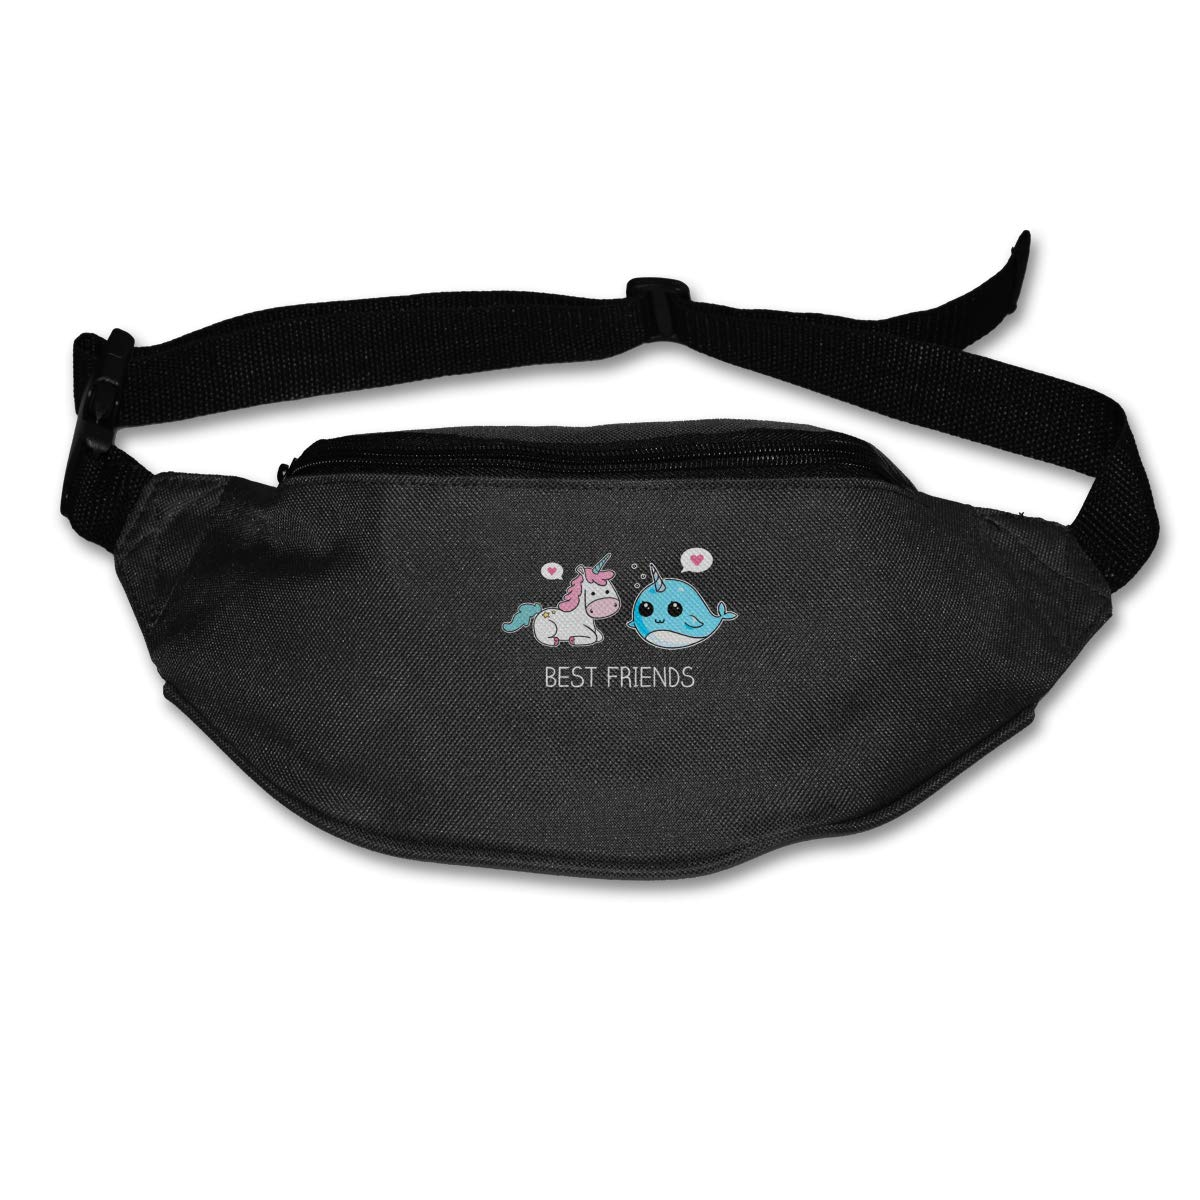 Kawaii Narwhal Unicorn Best Friend For Love Waist Pack Fanny Pack Adjustable